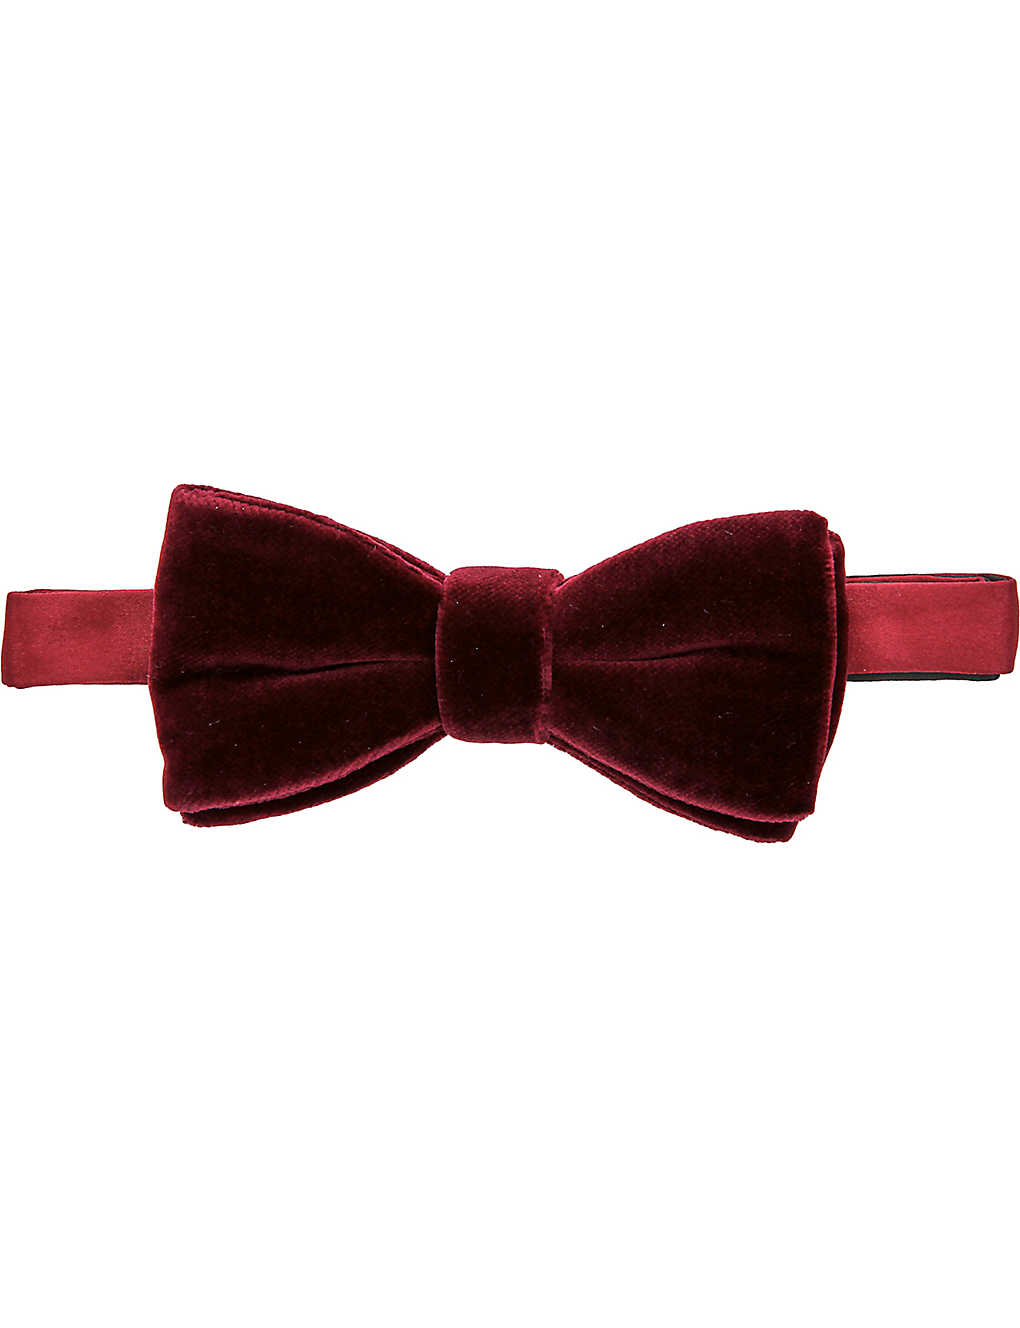 dfd0a13602f6 THOMAS PINK - Ready-to-wear velvet bow tie | Selfridges.com